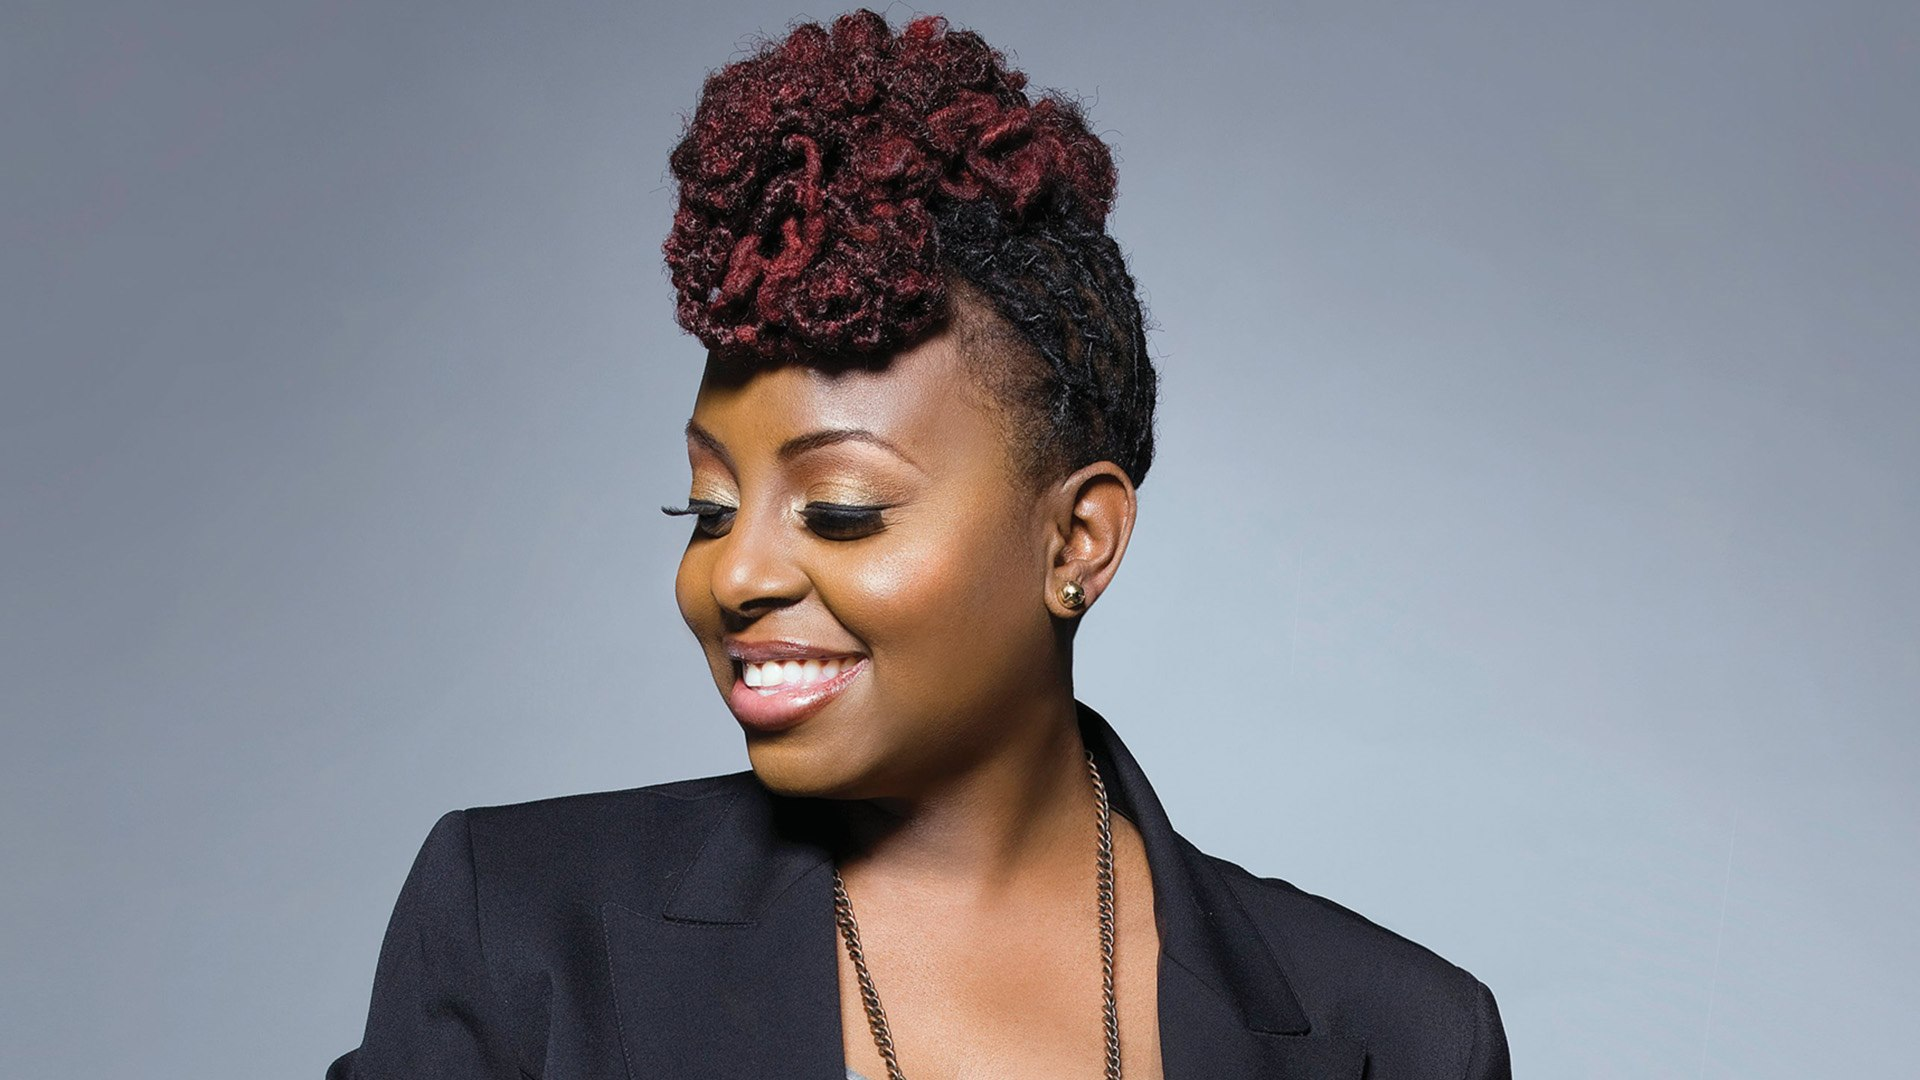 Ledisi S I Blame You Video Is A Natural Hair Treasure